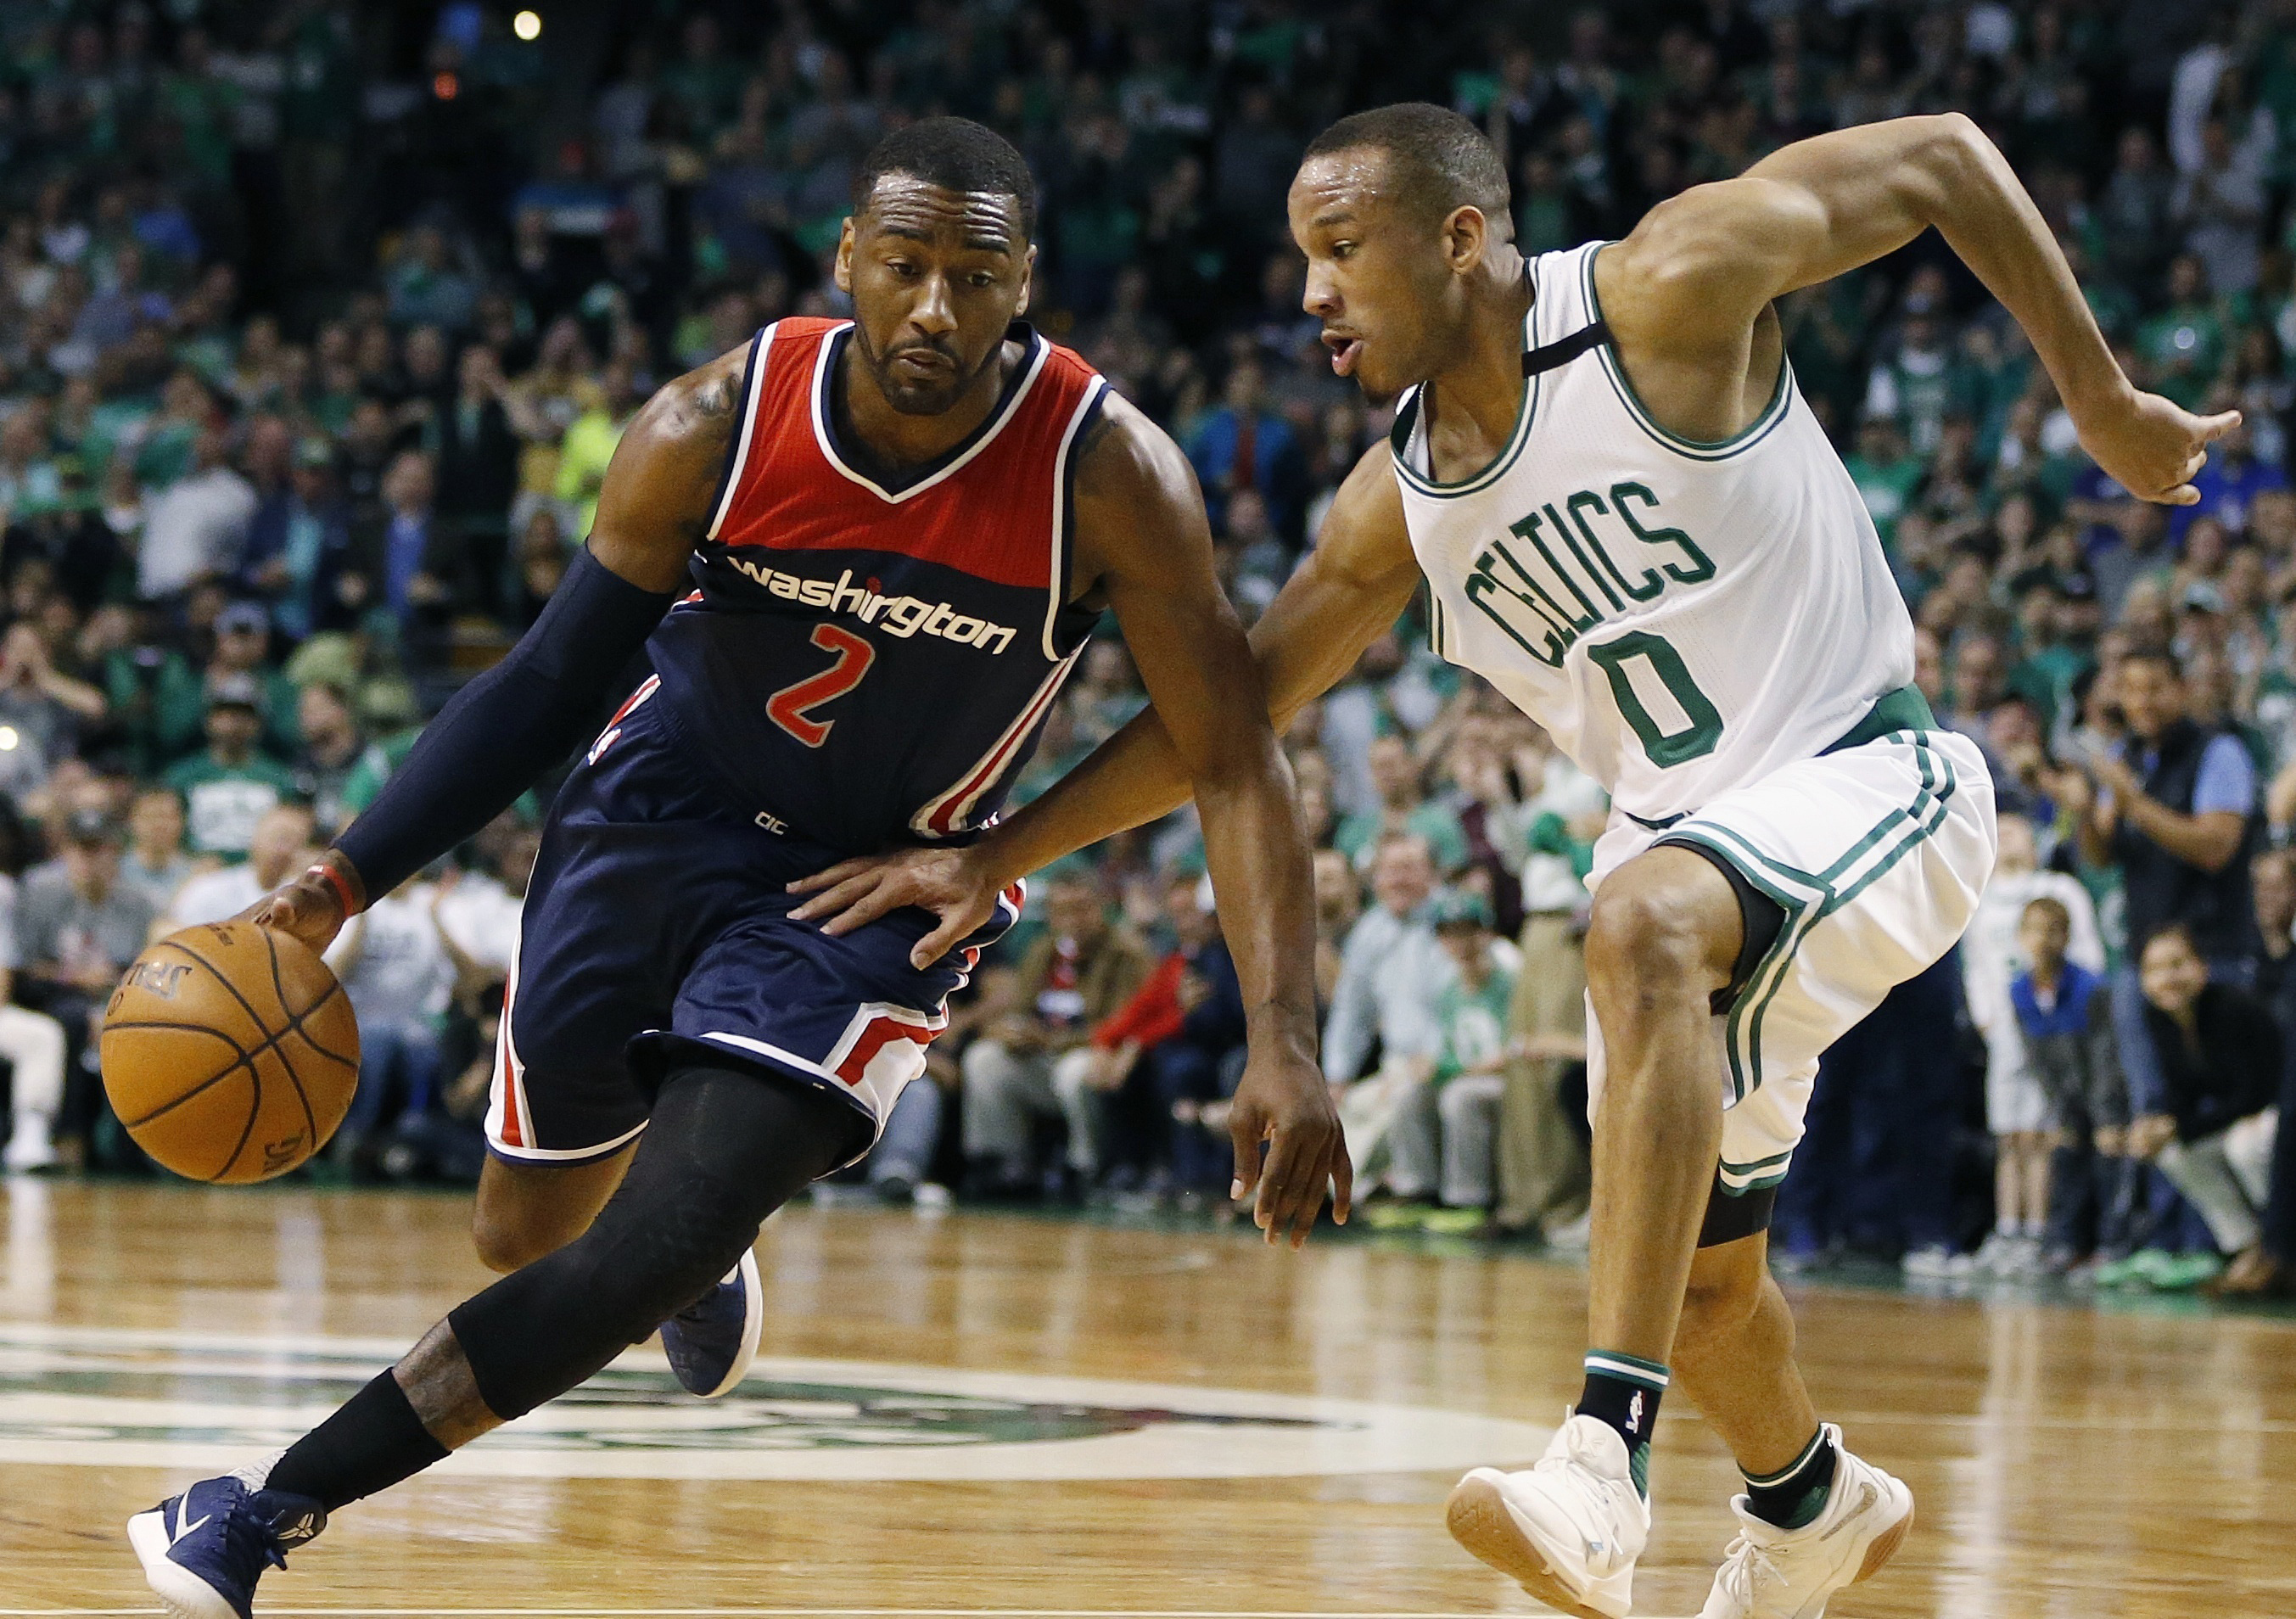 John Wall (2) drives past Boston Celtics guard  Avery Bradley (0) during a second-round playoff game in April.  (MICHAEL DWYER / AP)